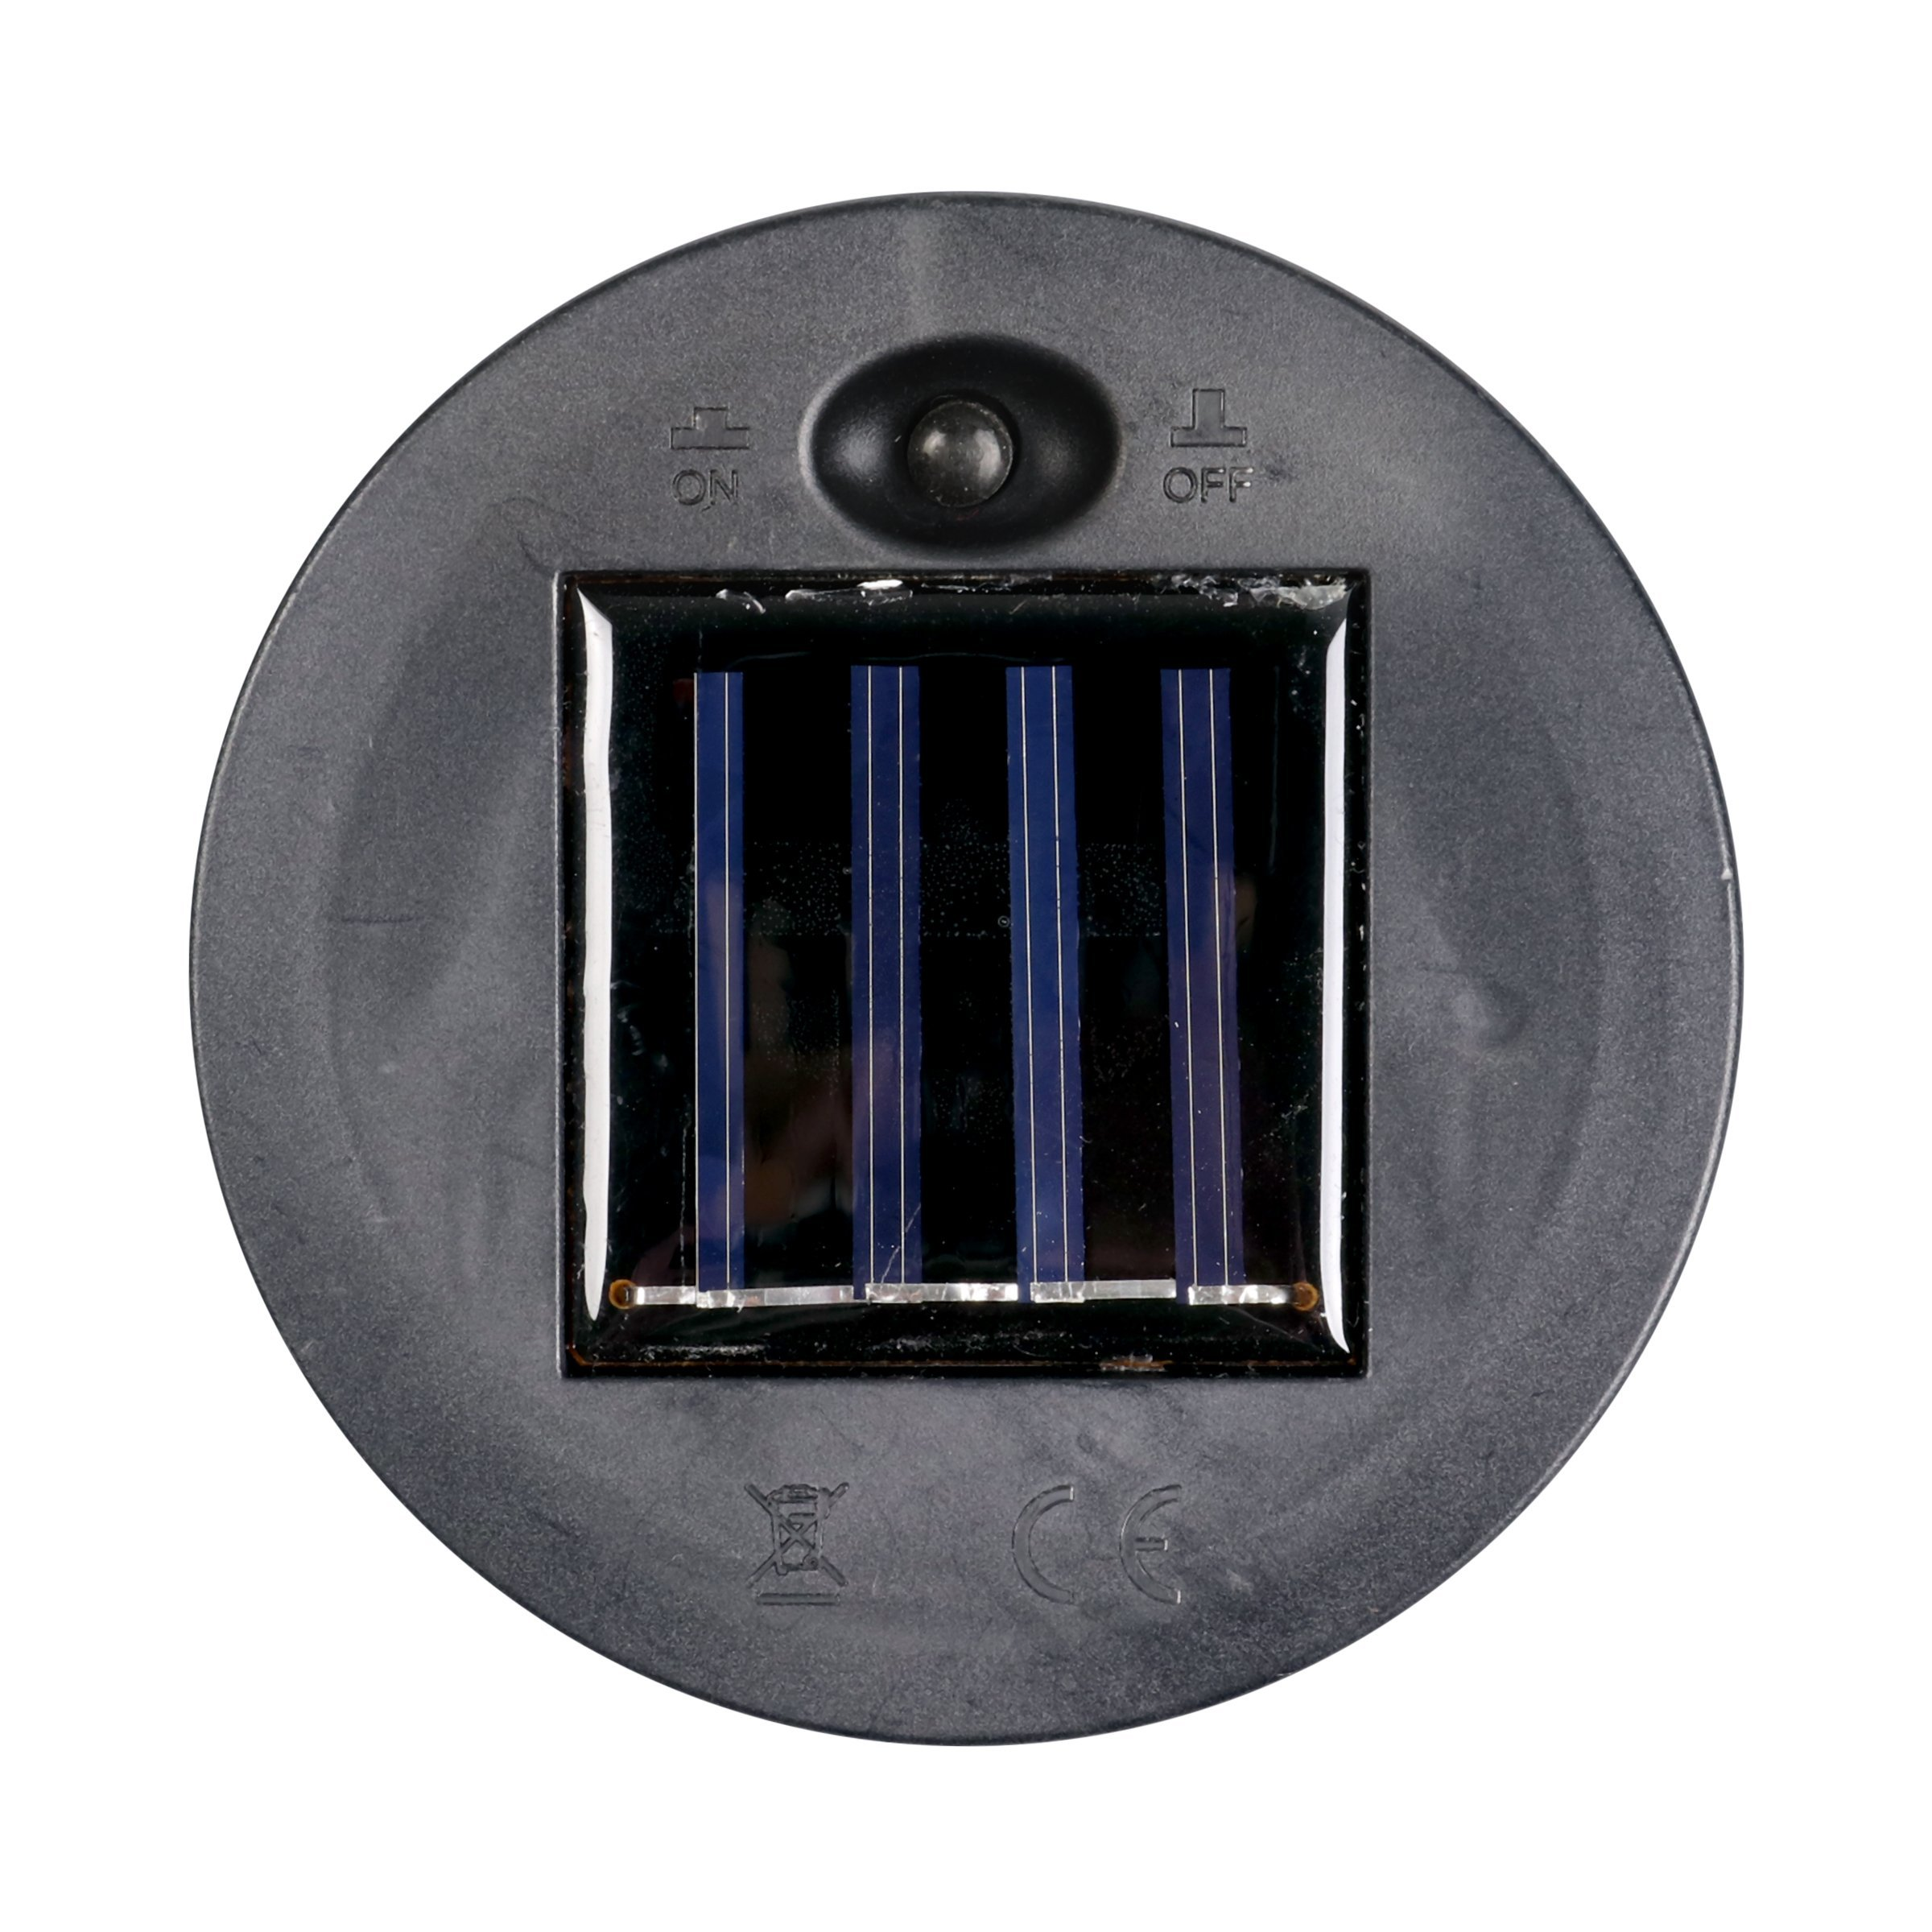 Exhart Blue Solar Lantern - Glass Tear-Shaped Hanging Lantern - Teardrop Glass Ceiling Lantern Hangs in a Metal Cage w/ 12 Blue LED Firefly Solar Lights 7'' L x 7'' W x 24'' H by Exhart (Image #4)